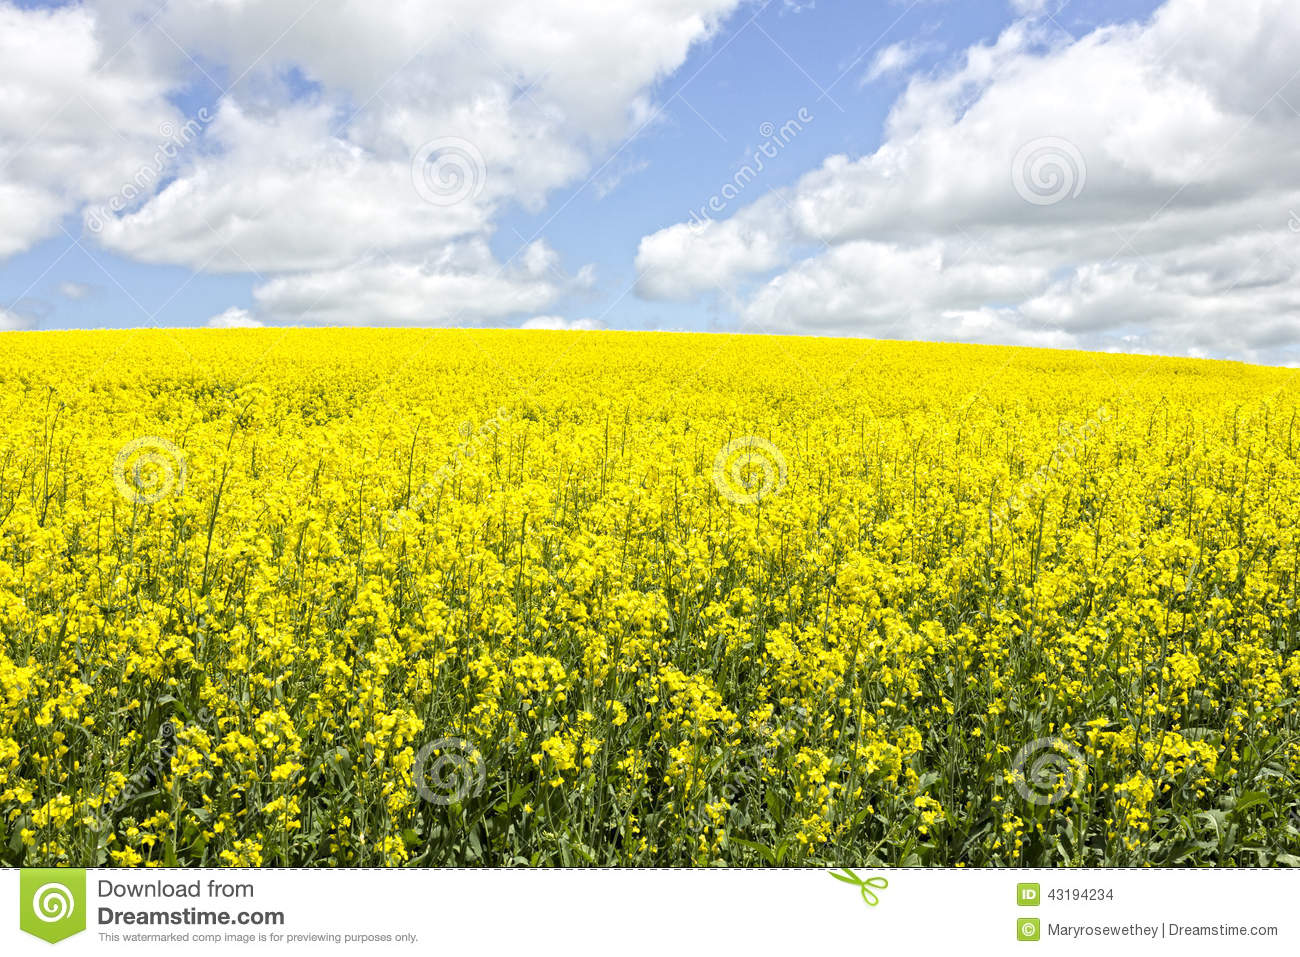 Crop with yellow flowers images fresh lotus flowers crop with yellow flowers images flower decoration ideas mightylinksfo